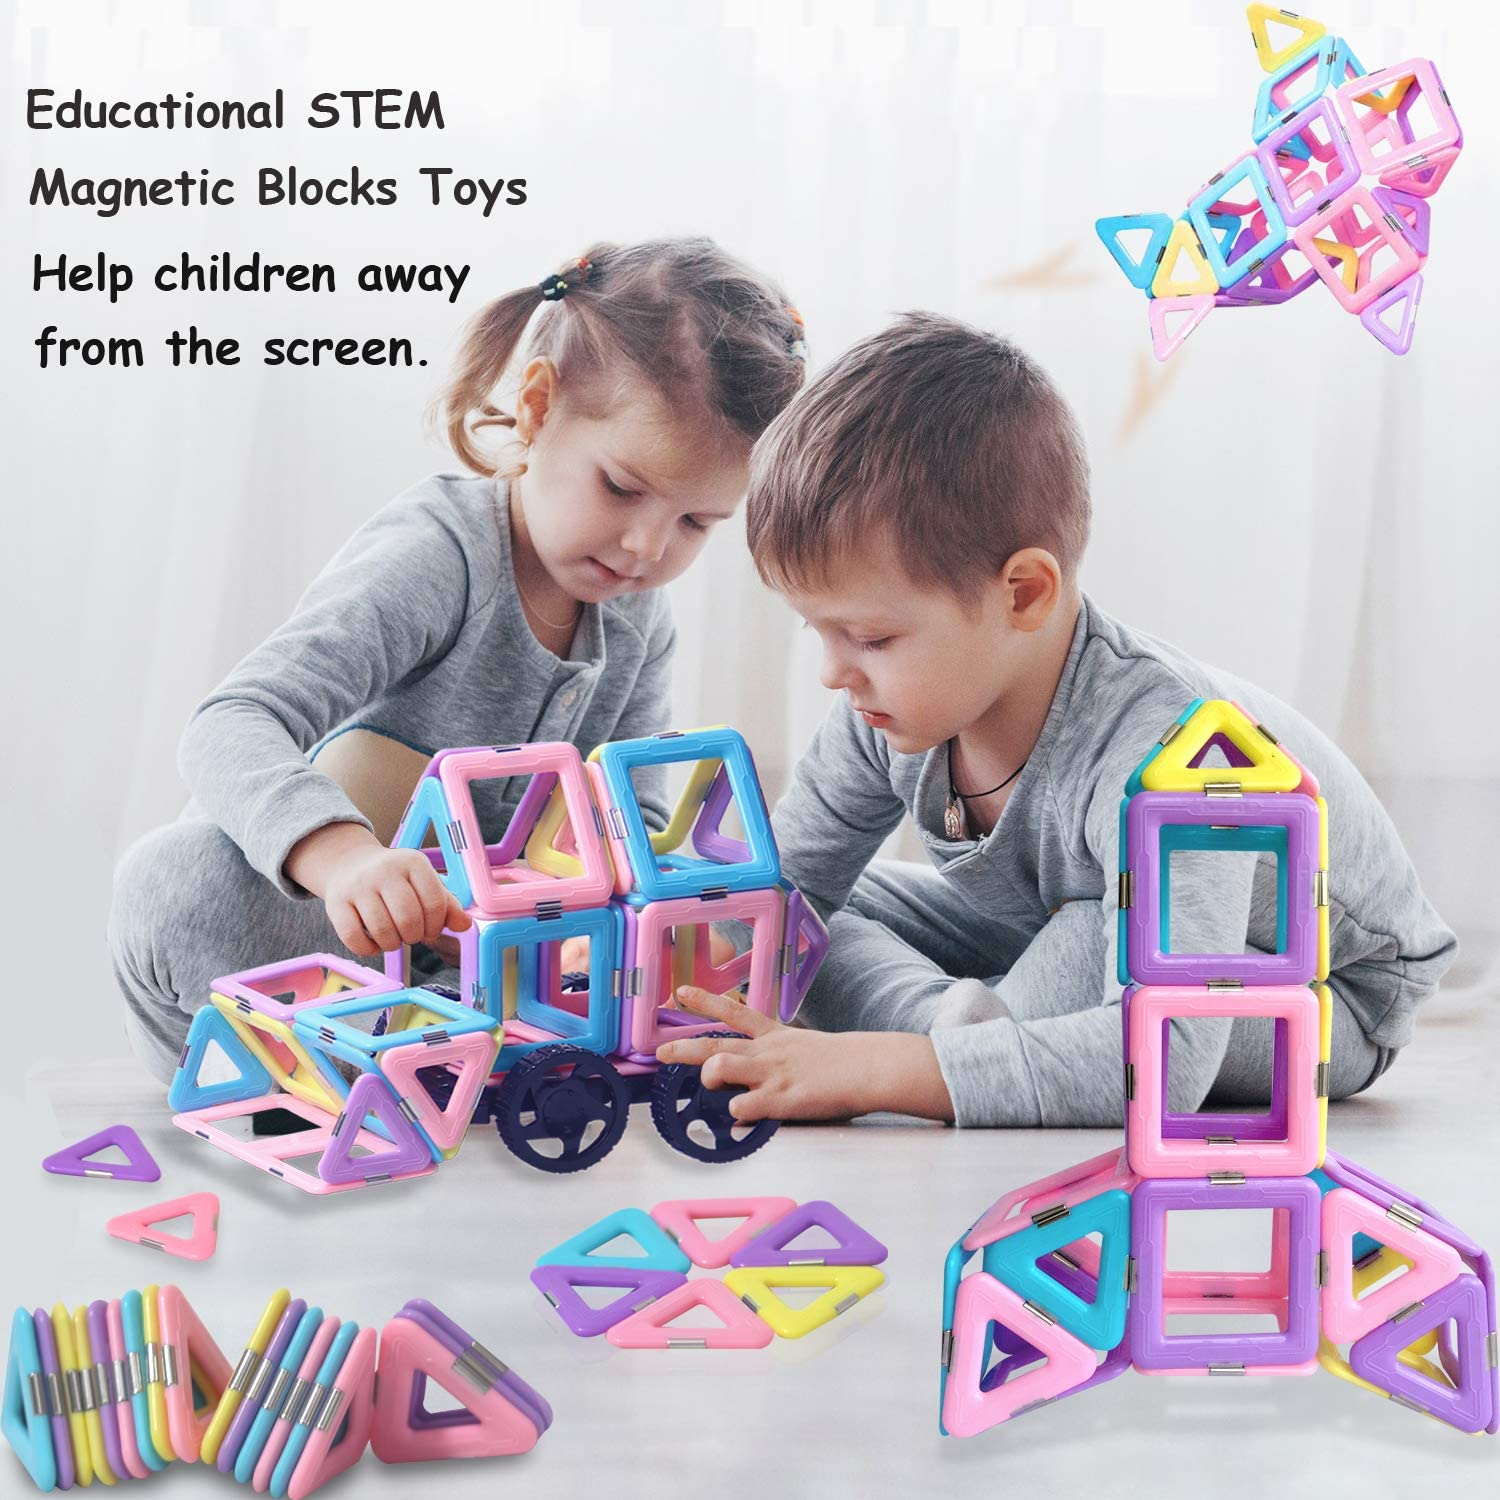 49PCS Castle Magnetic Building Blocks Magnetic Tiles Educational Stem Toys for Kids Toddlers Creative Learning /& Development Construction Set Gifts for Girls Boys Age 2 3 4 5 6 7 Year Old